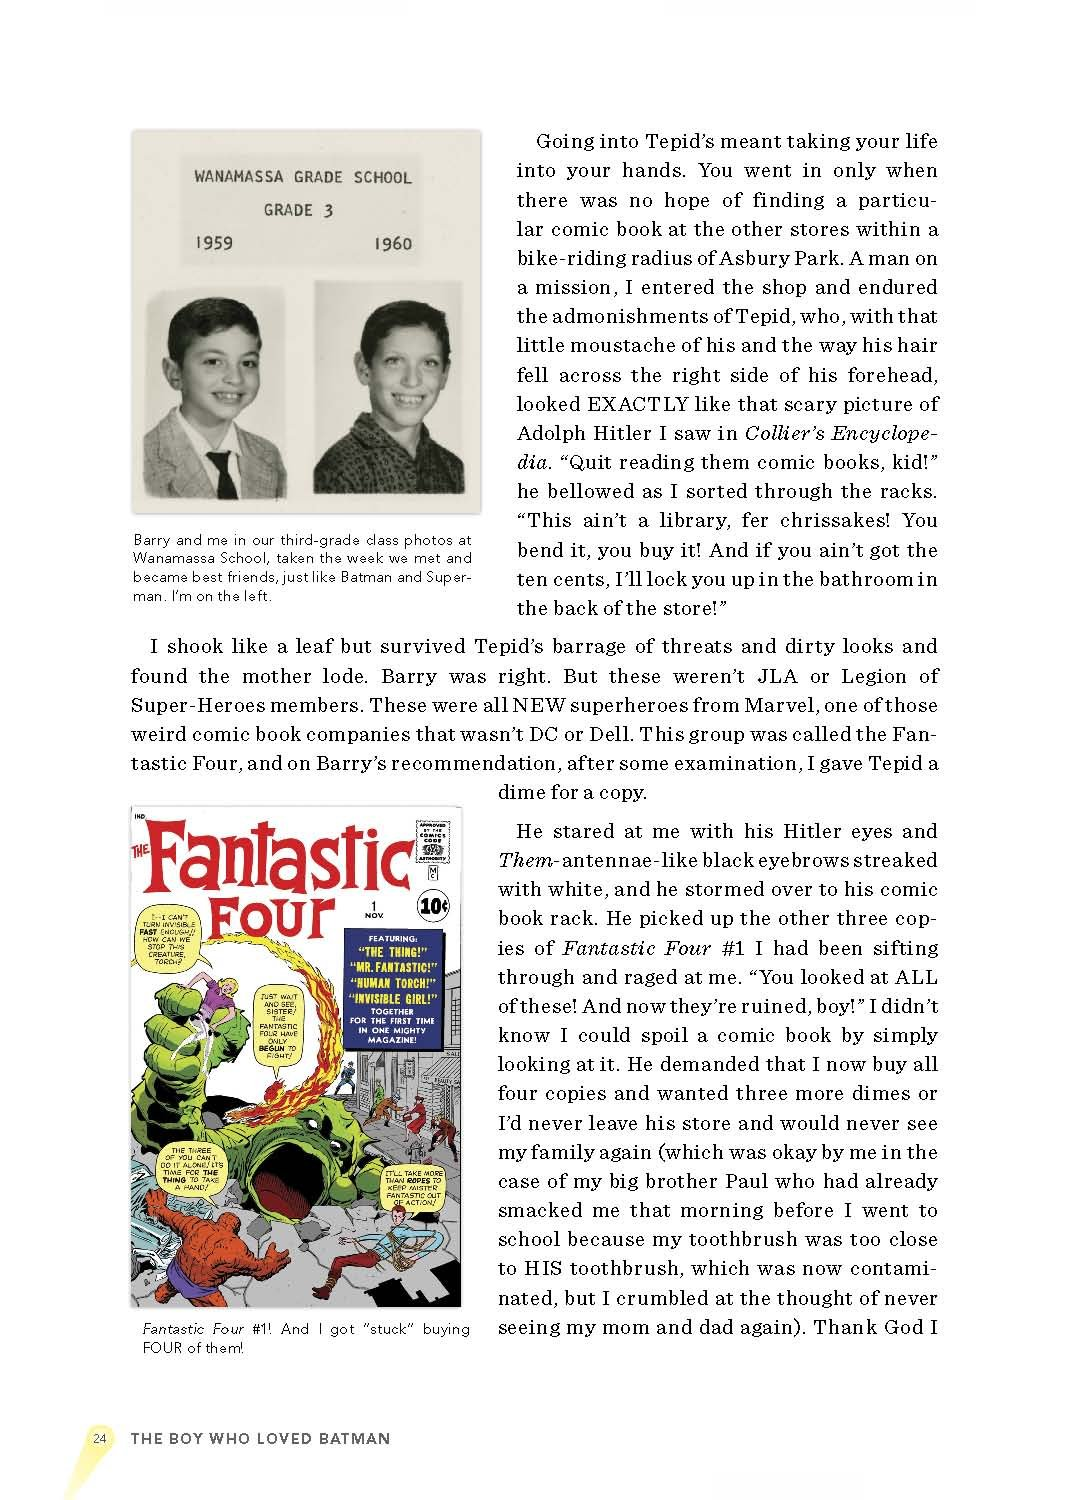 The boy who loved batman a memoir michael uslan 9780811875509 the boy who loved batman a memoir michael uslan 9780811875509 amazon books fandeluxe Choice Image